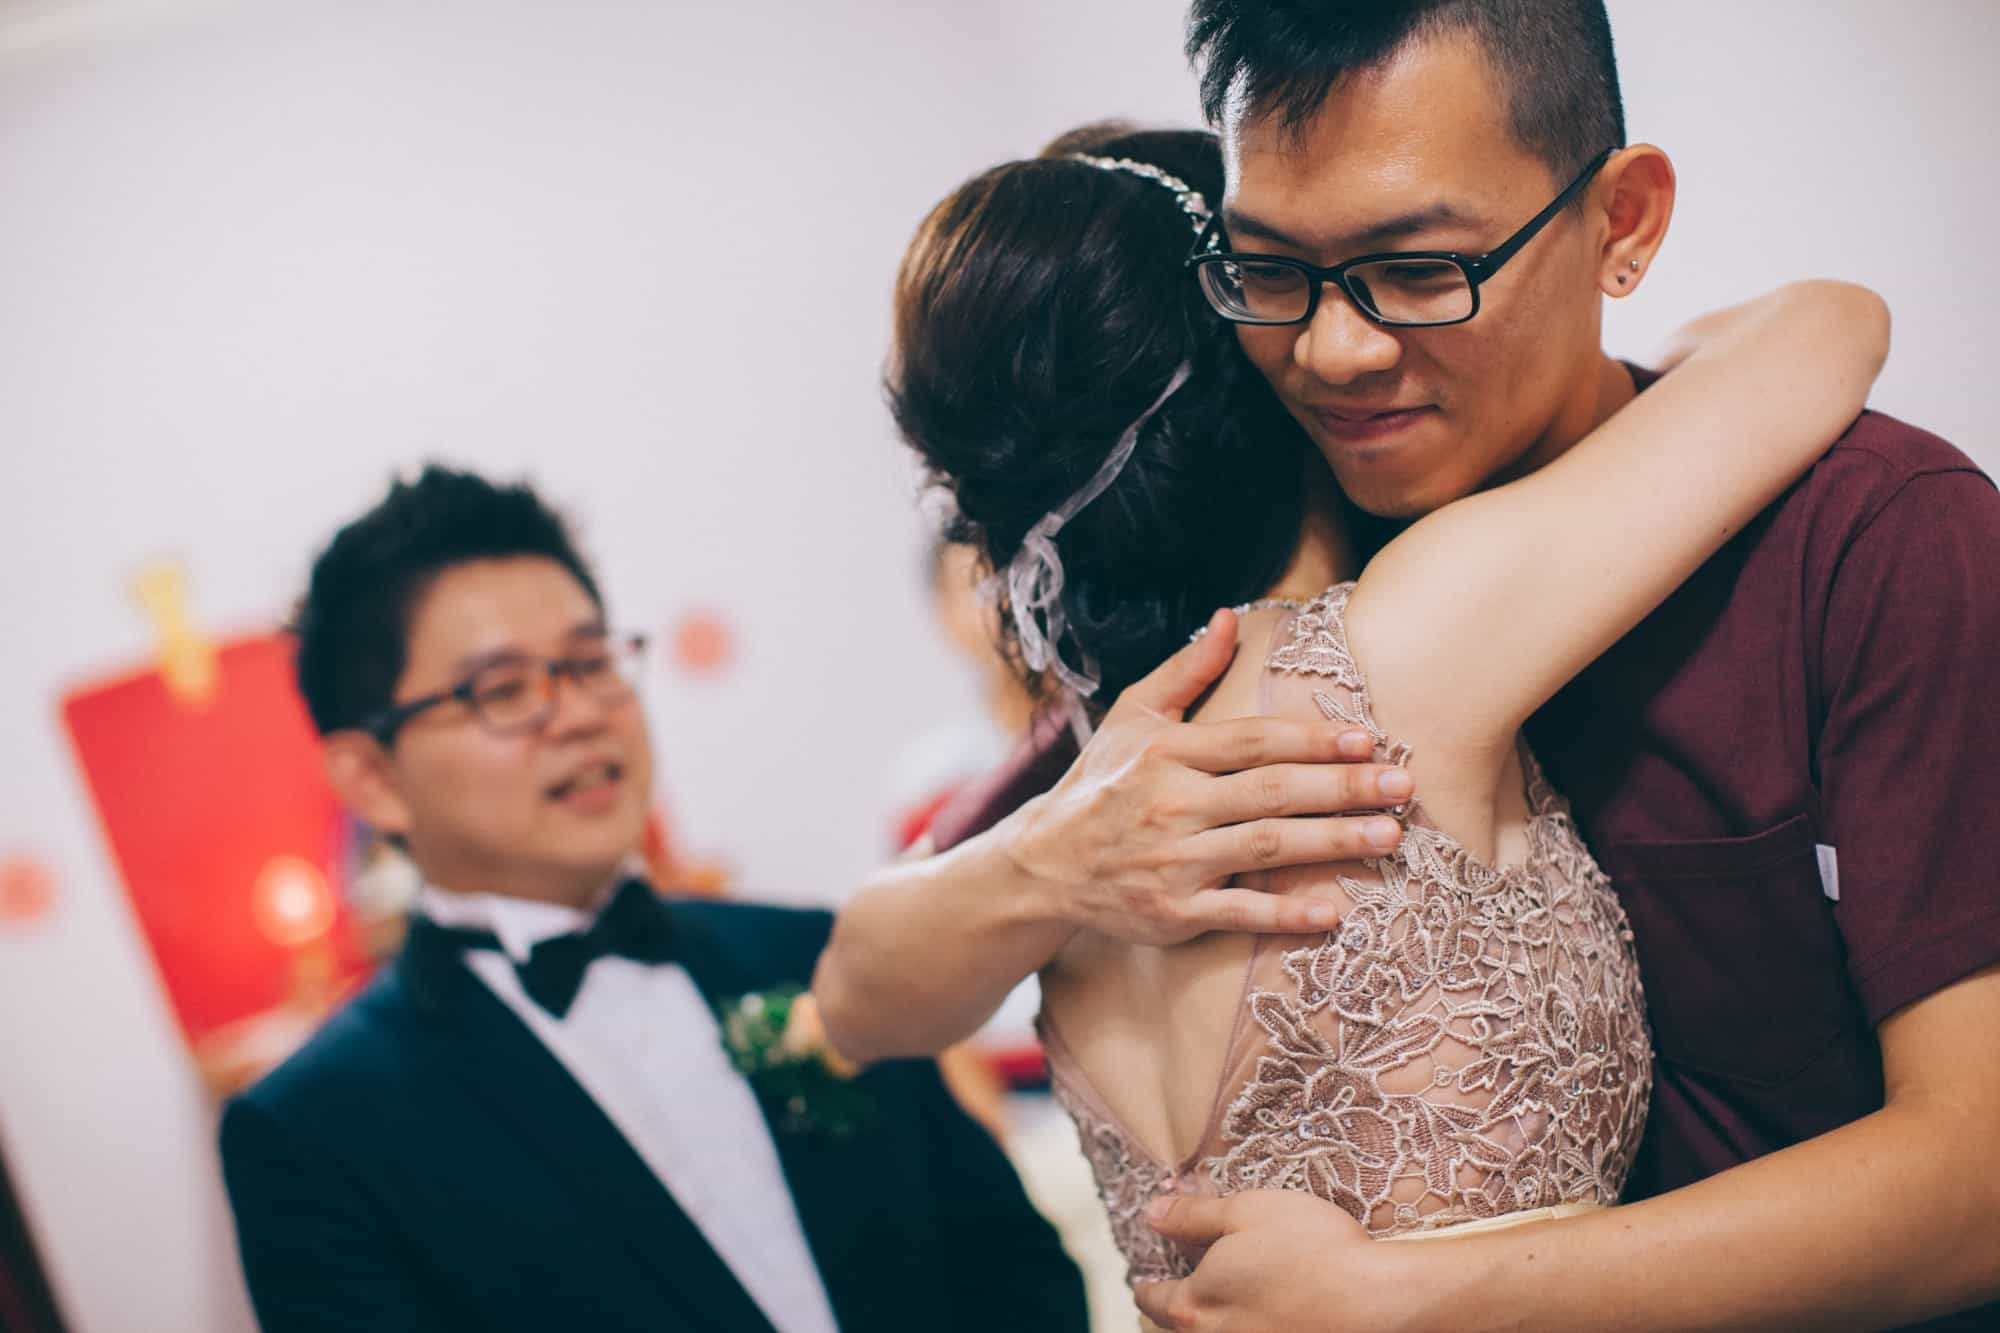 Johor malaysia wedding photograph kuala lumpur cliff choong photography gate crashing game groom brdie holding hands love kombi tea ceremony